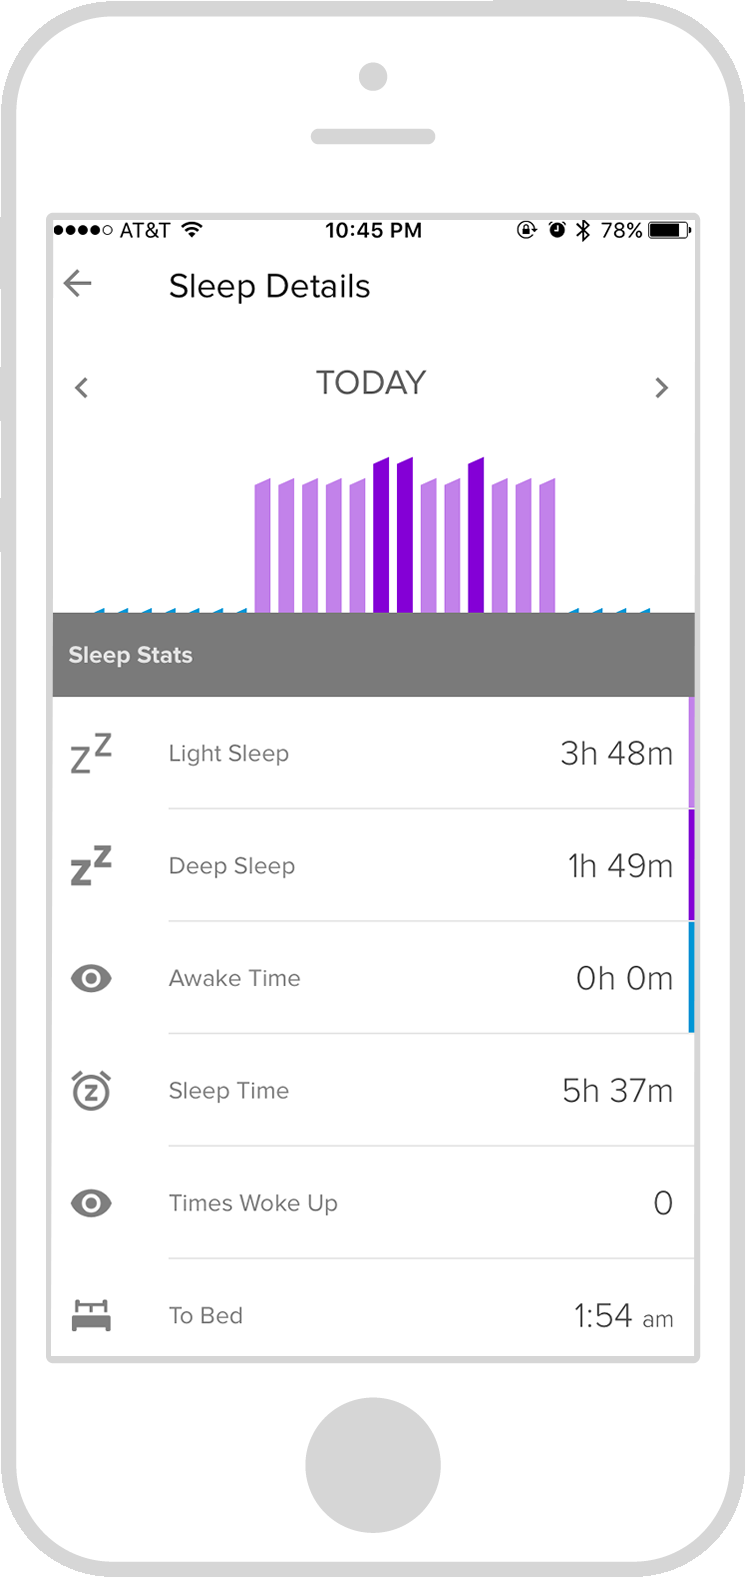 A snapshot of see how you slept last night - as you touch the bars the graph points out deep sleep vs. light sleep and over which hours.